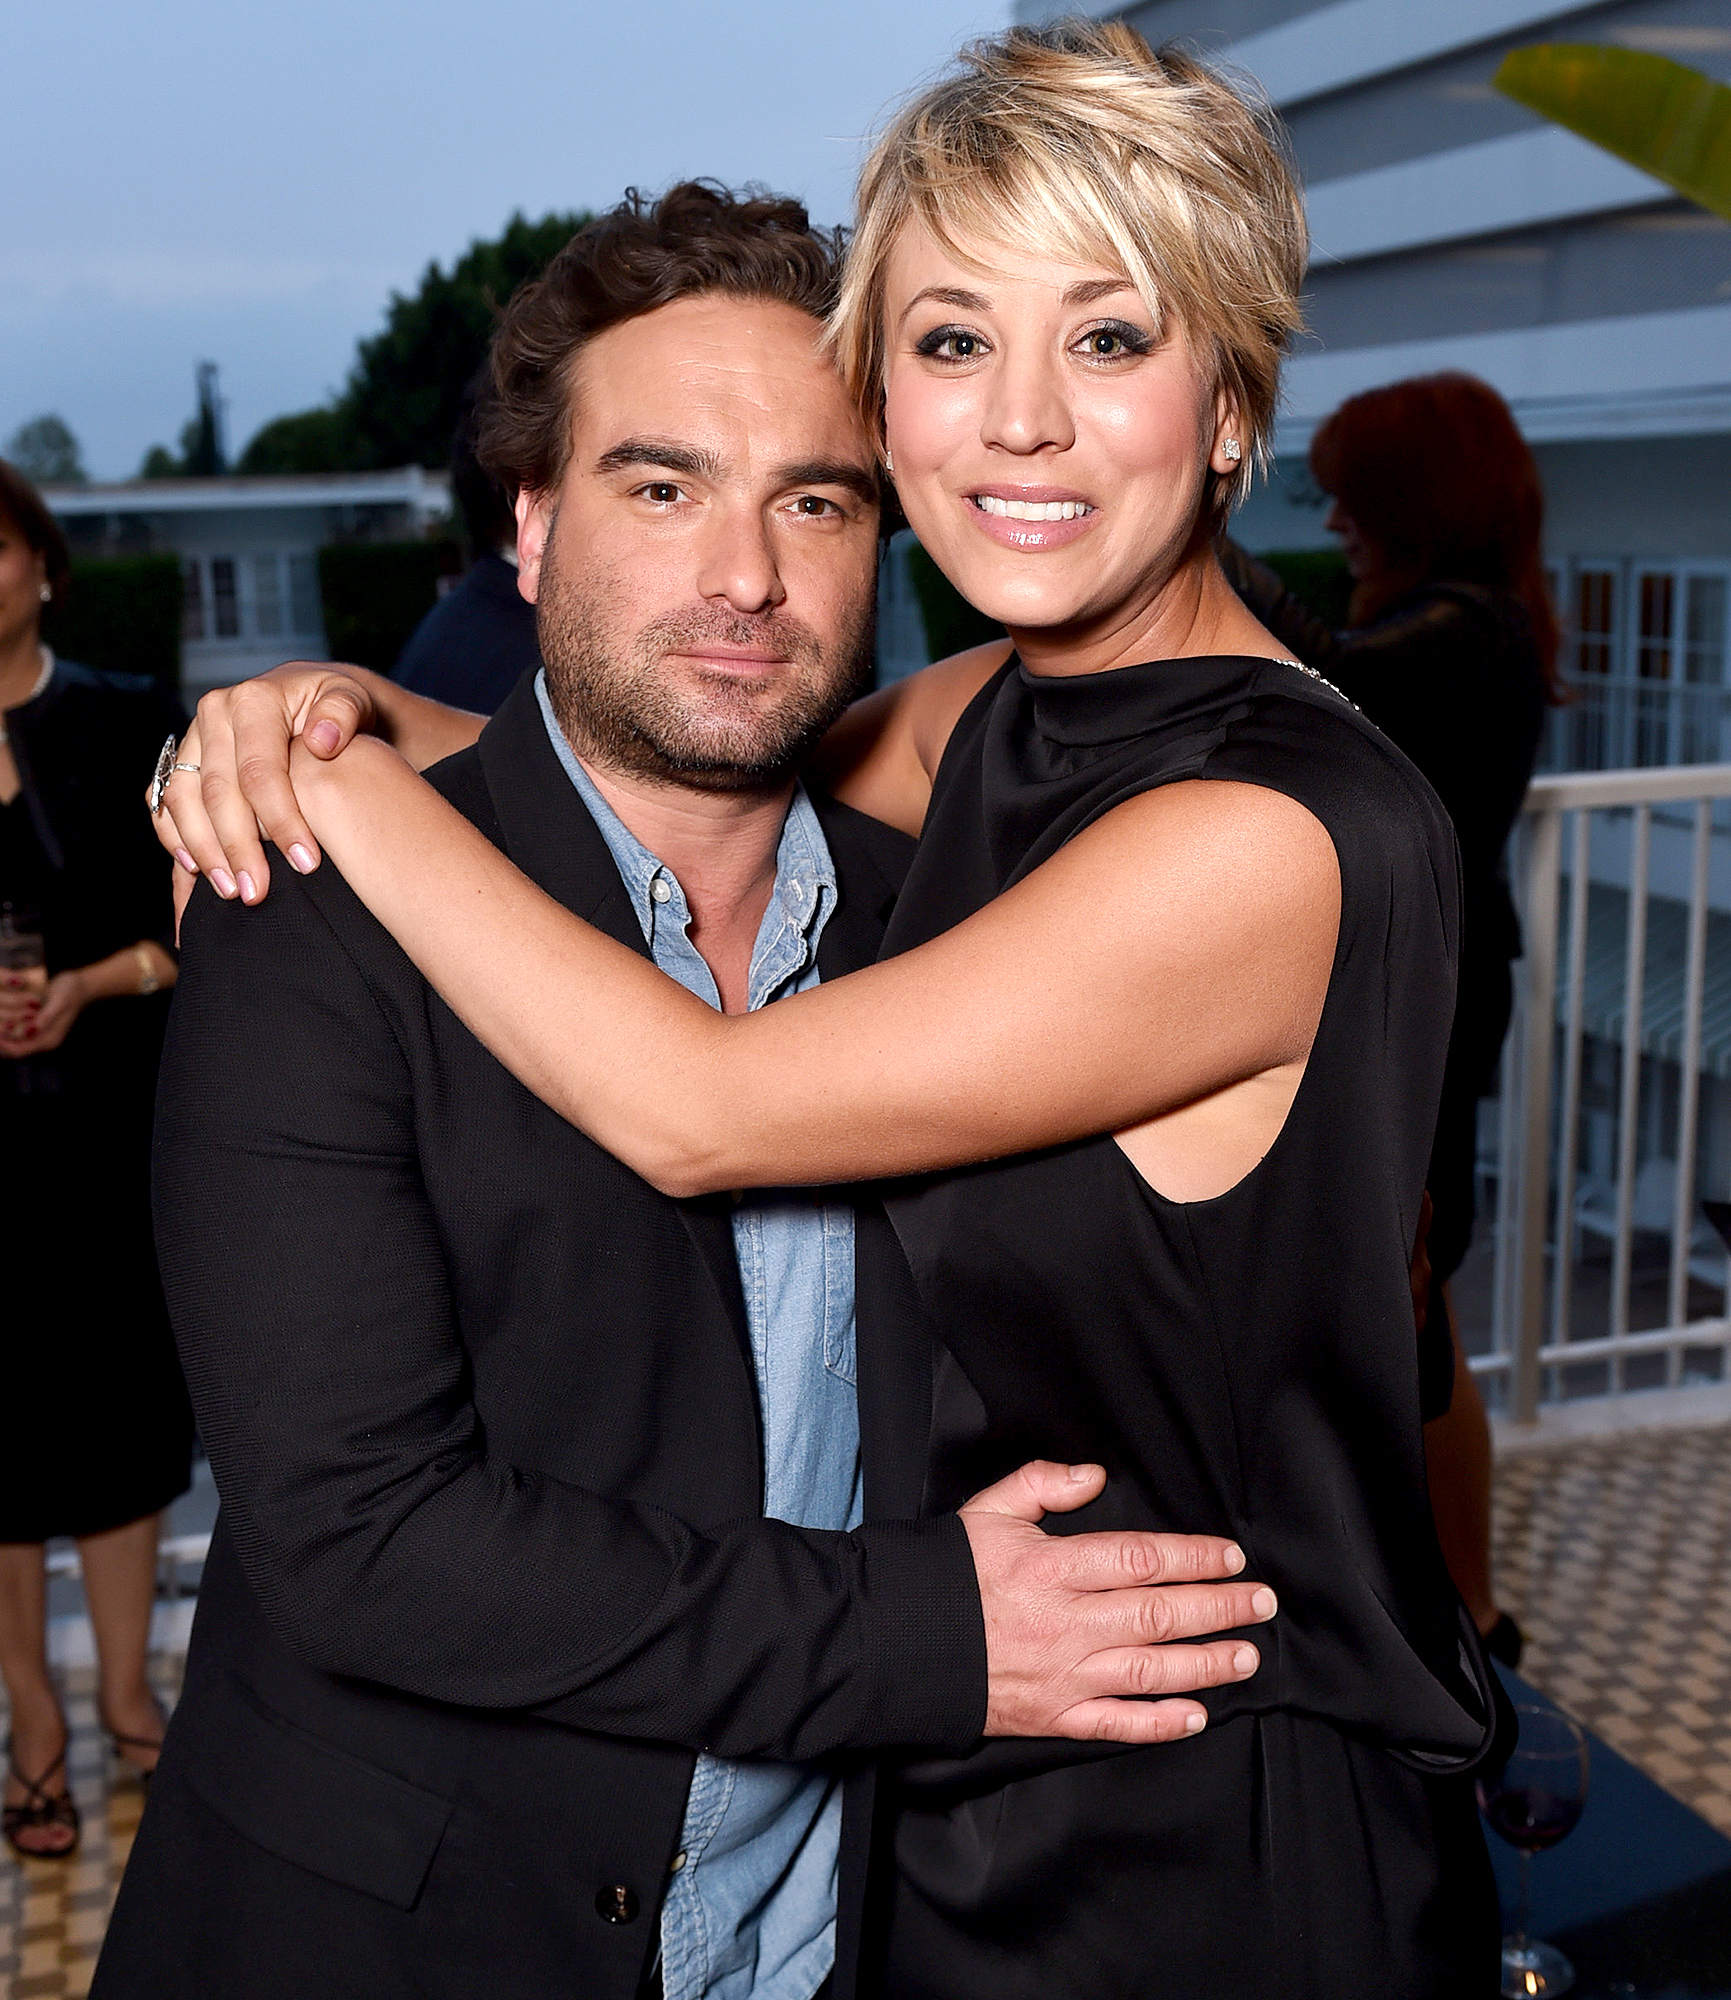 'Adore You!' Johnny Galecki Gushes Over Kaley Cuoco After Alaina Meyer Split